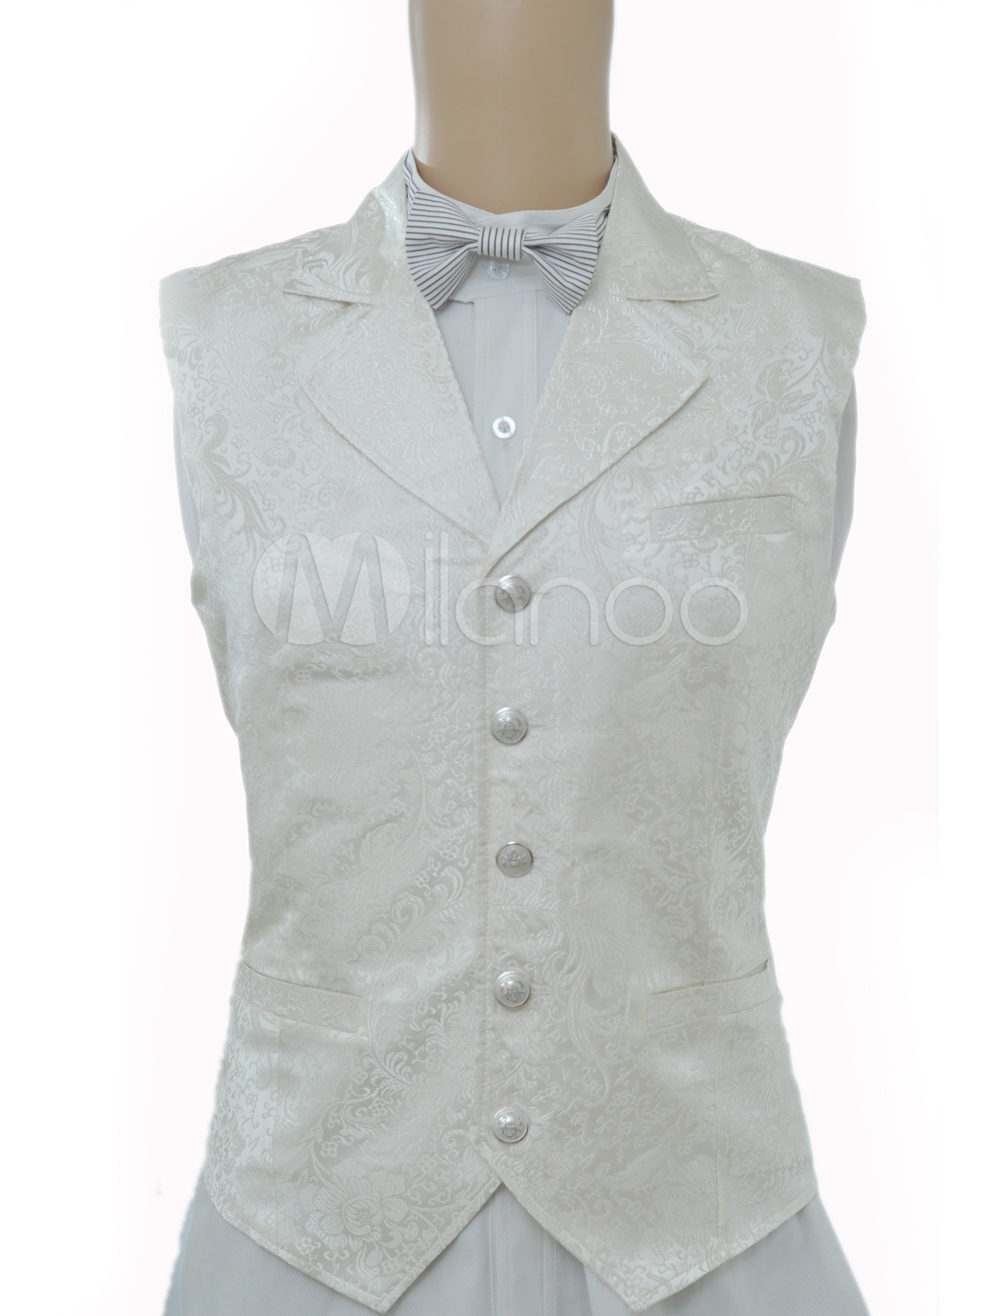 Buy Vintage Steampunk Costume White Men's Waistcoat Back Strap Retro Suit Vest Halloween for $53.99 in Milanoo store